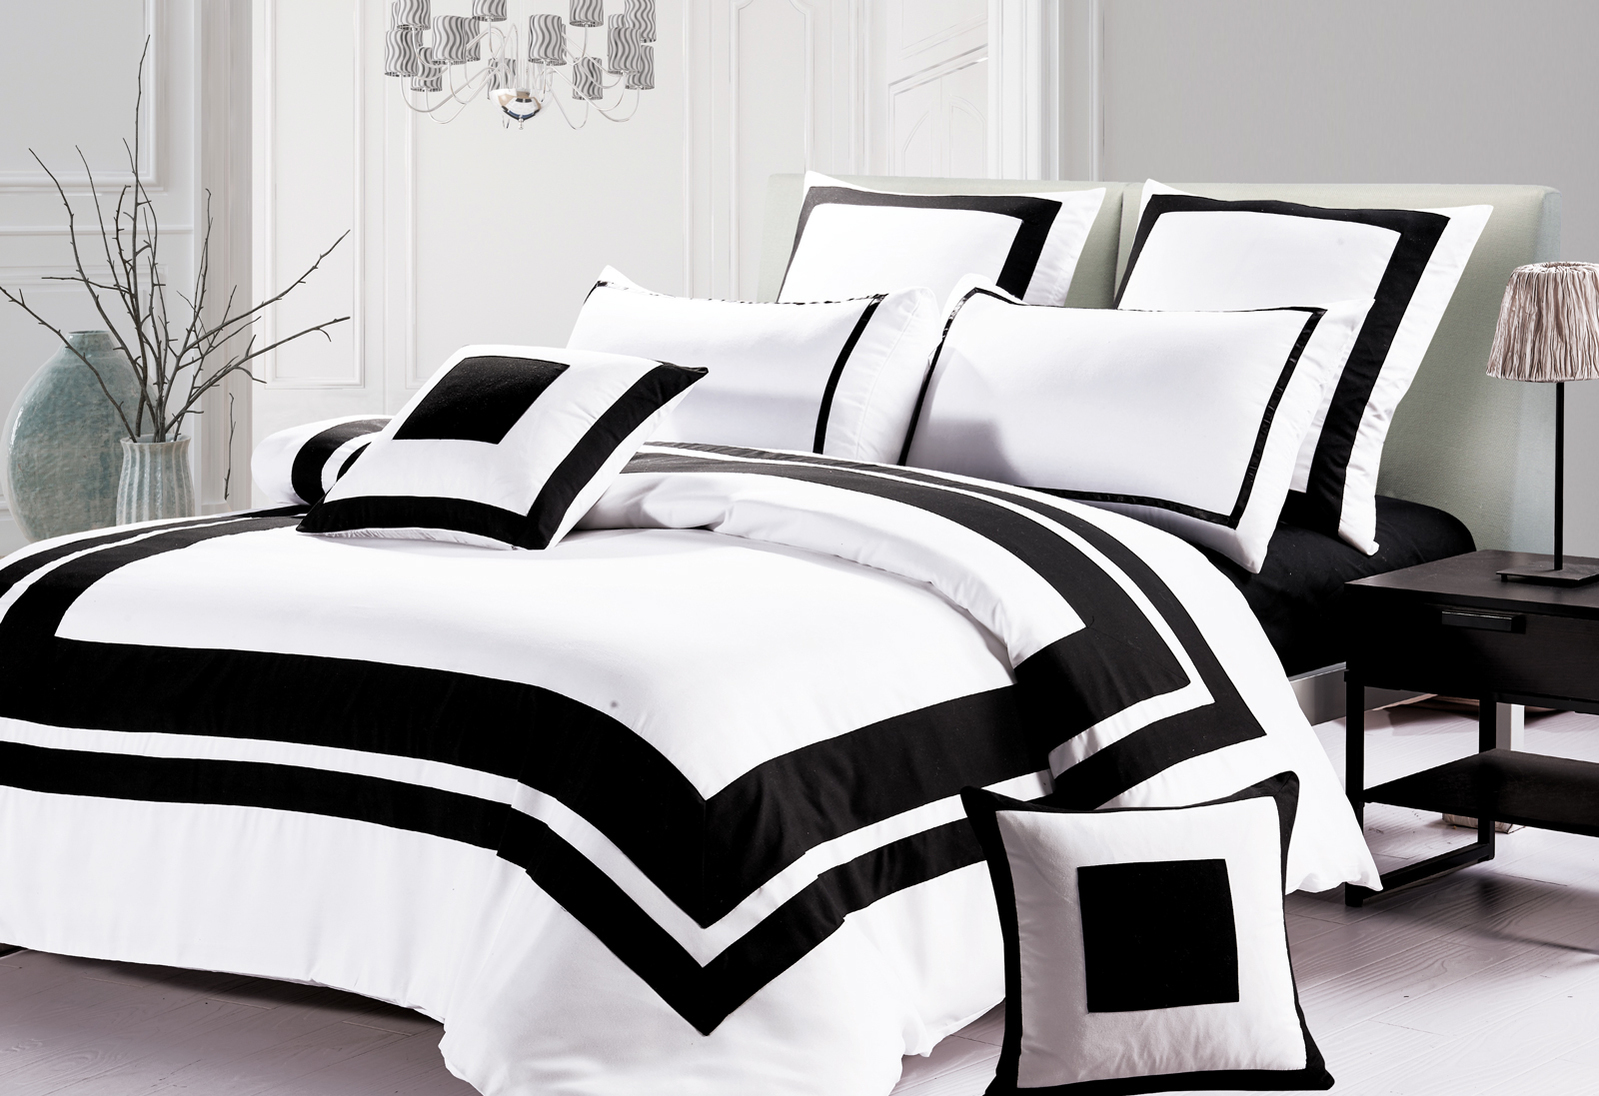 and maxx nicole decoration ralph goods bed qu ideas elephant bedding quilts bedroom white tj duvet twin wonderful for comforter black lauren home tahari medallion miller floral comforters by set